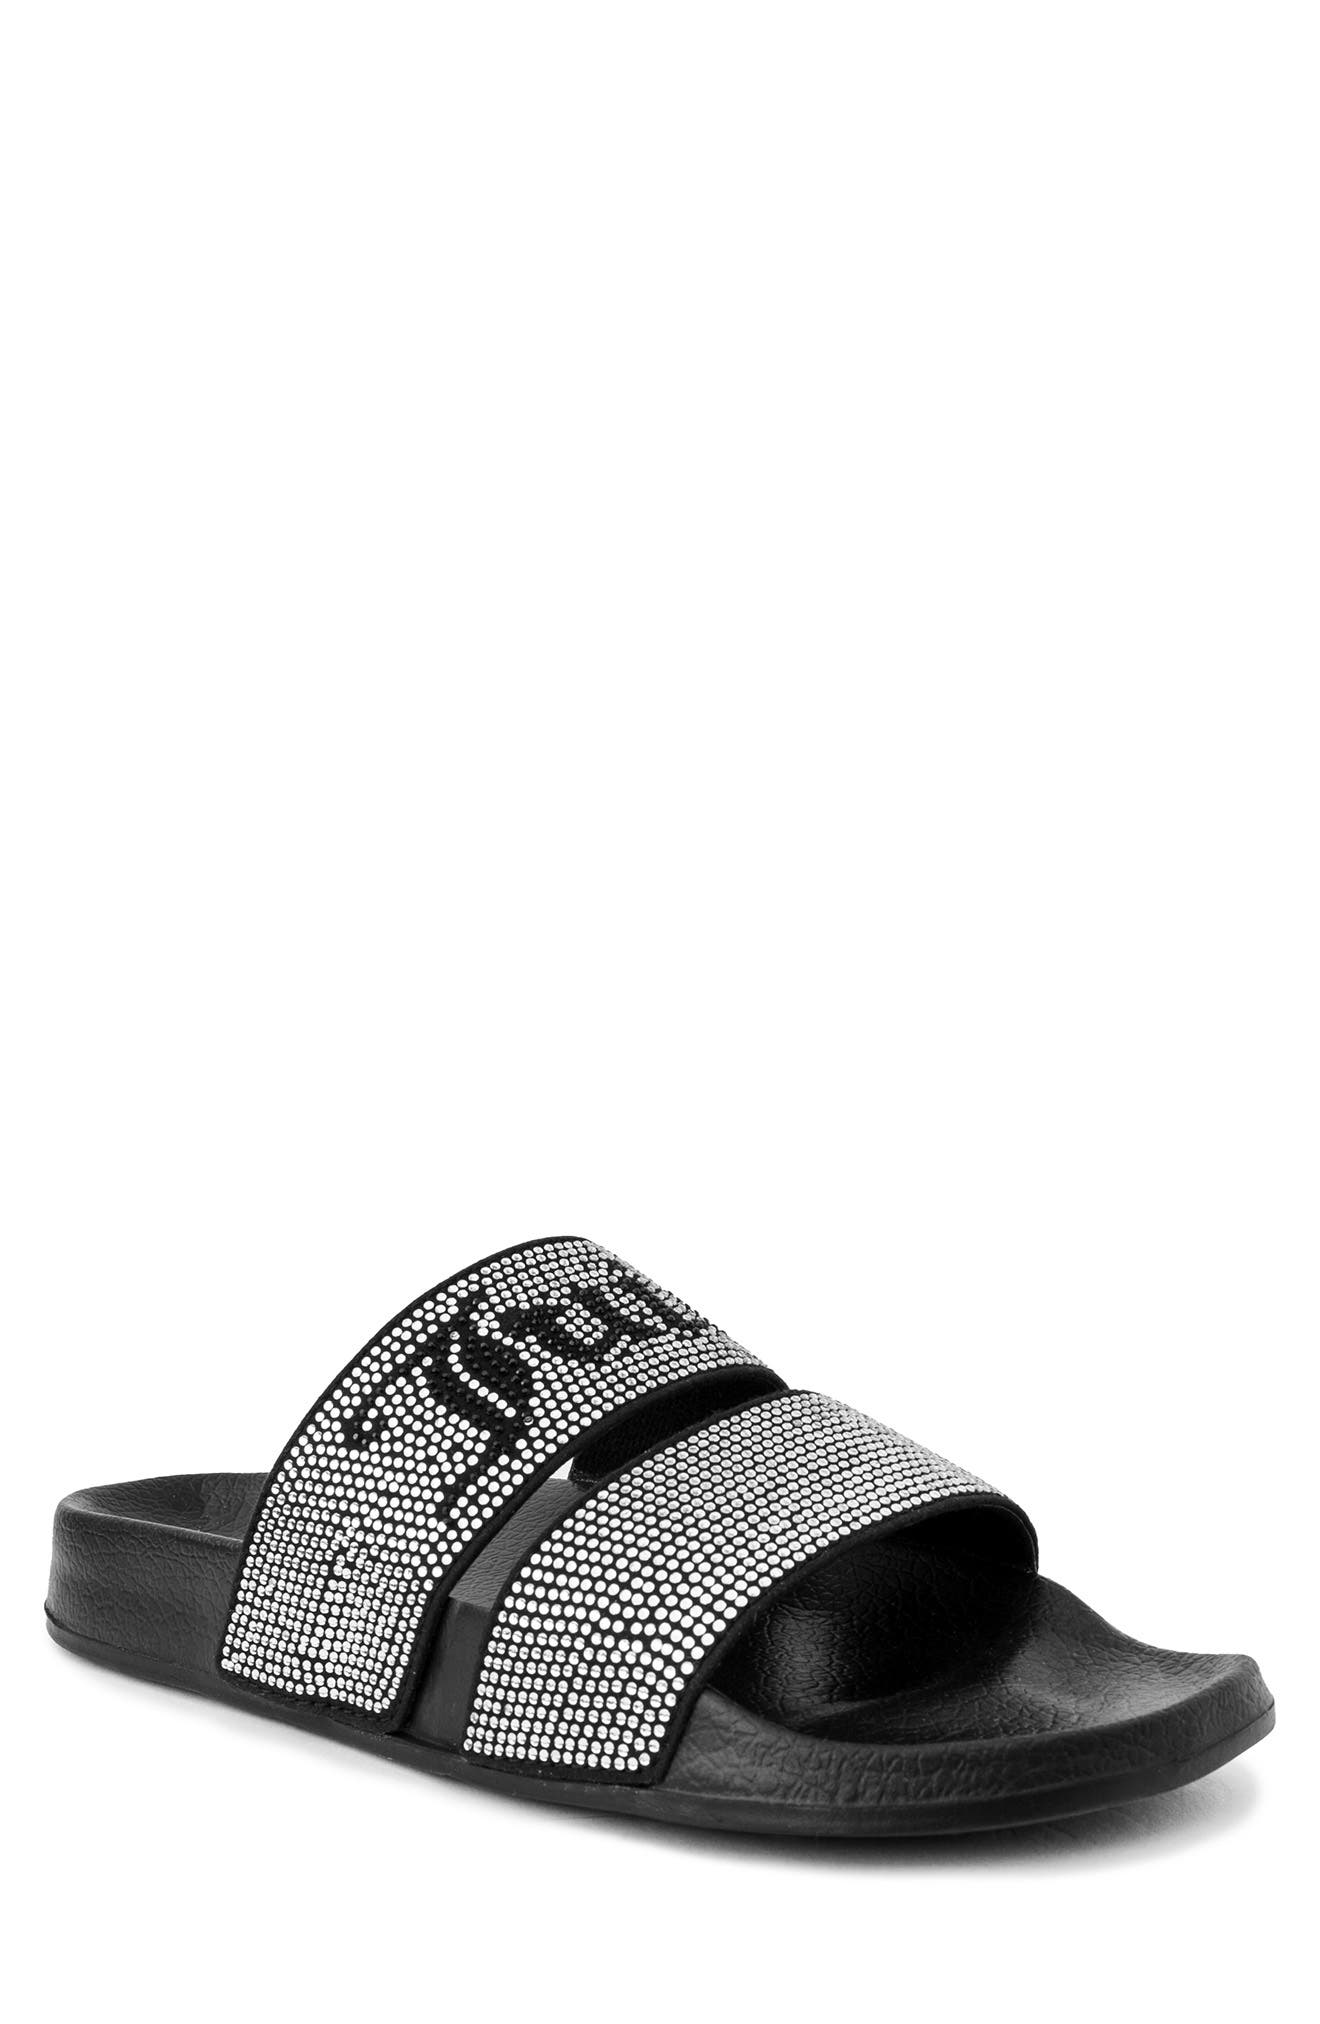 Juicy Couture WINX EMBELLISHED DOUBLE STRAP SLIDE SANDAL